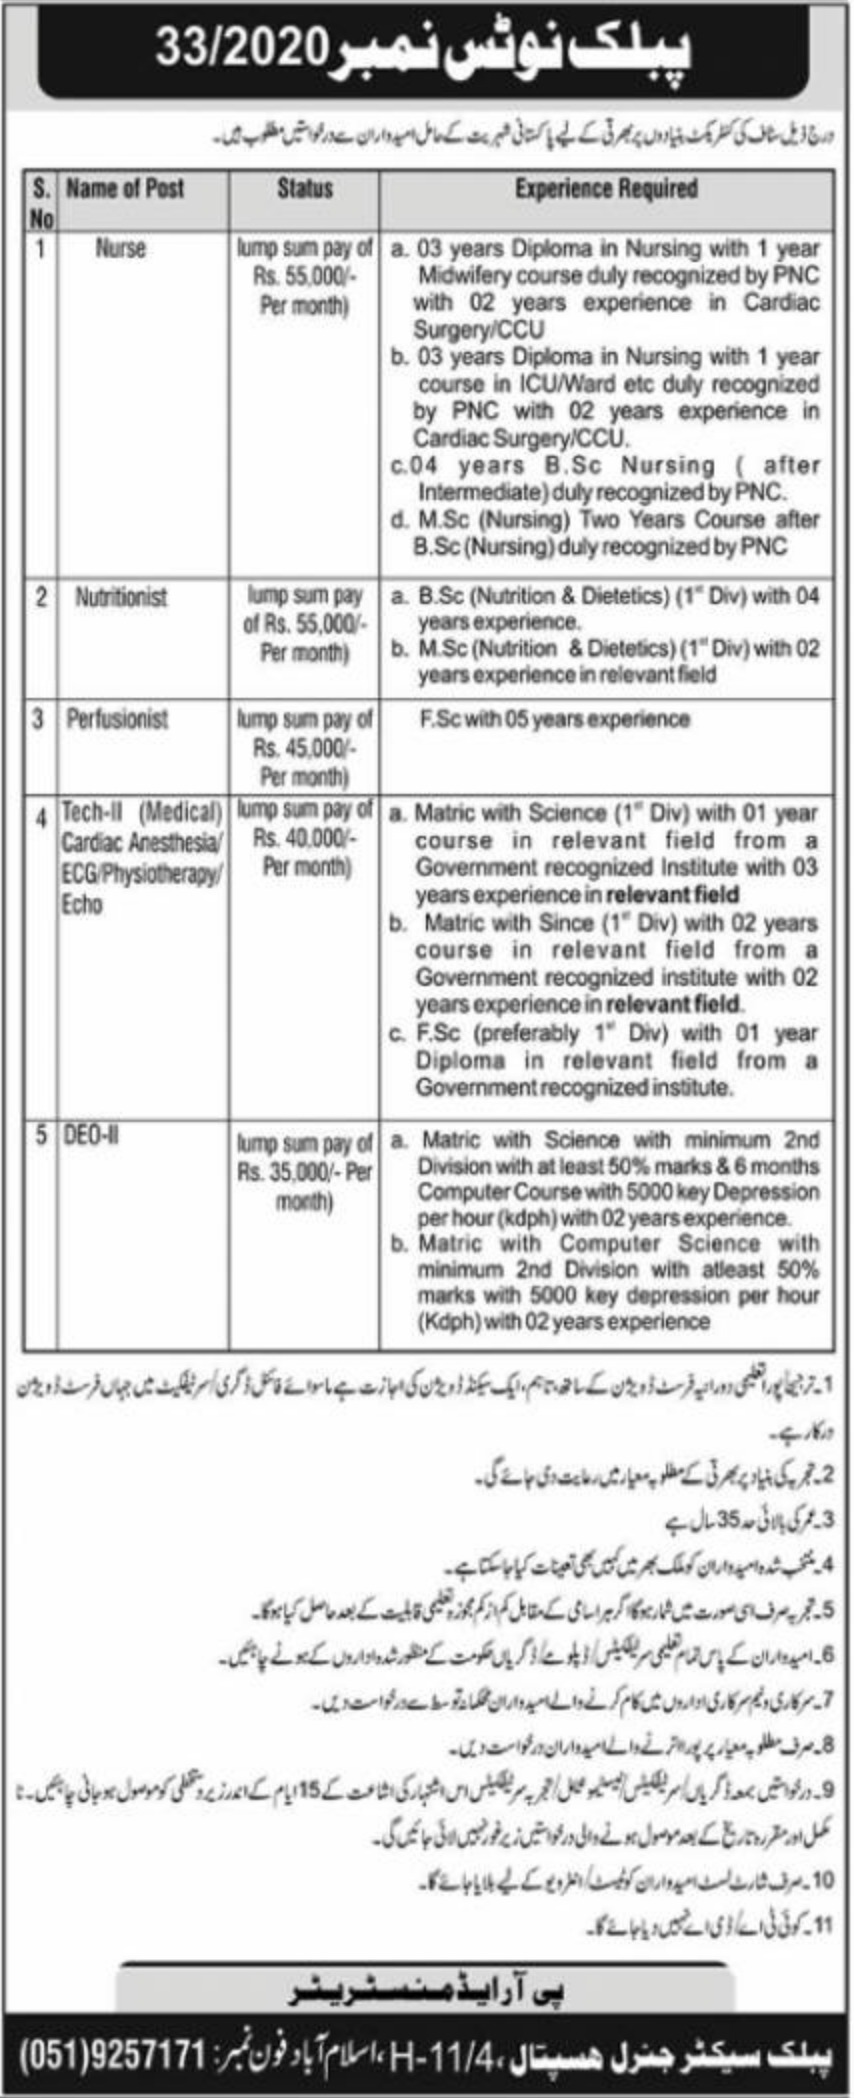 Public Sector General Hospital Islamabad Jobs December 2020